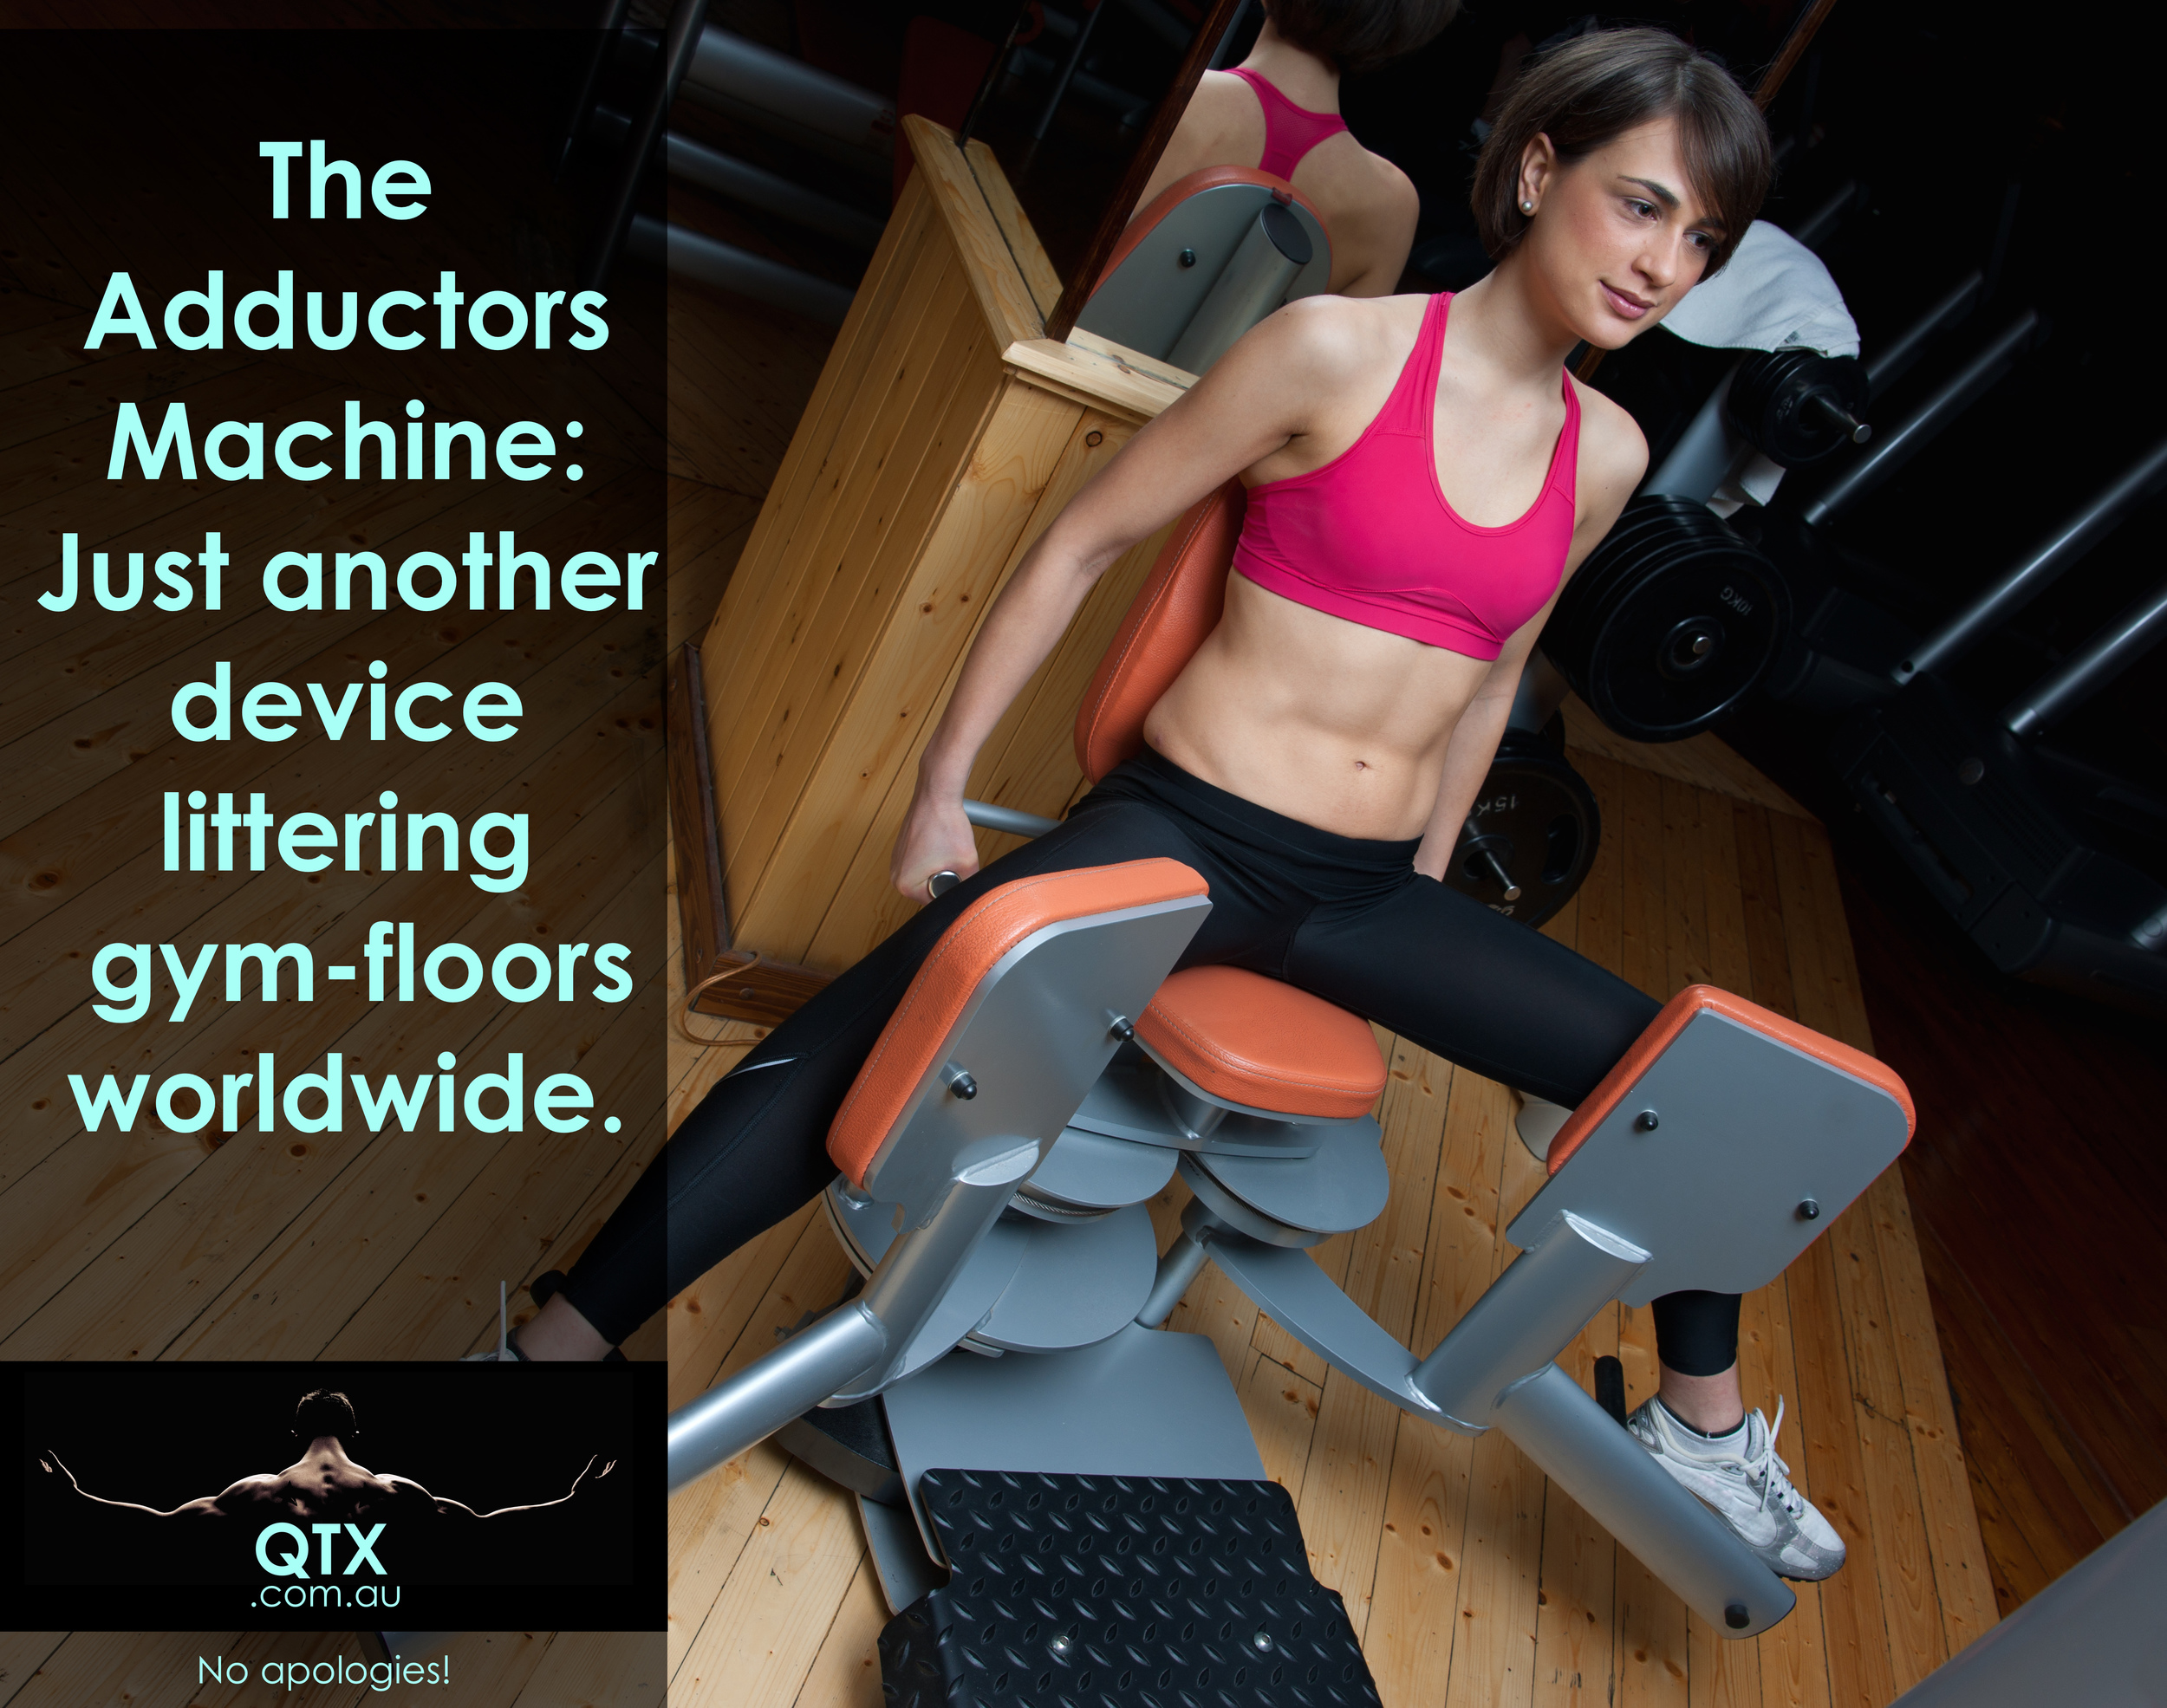 """Lets elaborate about my lack of affection for adductor machines. It's not just the fact that they don't represent a carryover or functional human movement. The main concern -in terms of biomechanics, physiological and neuromuscular functions-is the fact that the inner thigh muscles are designed to activate more efficiently during tension (think about a rubber band getting stretched). Such tension represents the eccentric contraction (or negative phase of the movement. For instance,putting a heavy pot on the floor). Through corrective training, the adductor muscles can get adapted to greater levels of tension. The adductor machine, on the other hand, does almost the opposite as it provides resistance mostly during de concentric phase of the action """"demanded""""by the apparatus (which, in our previous example,it's the equivalent to the moment when we pick up the heavy pot. So, the elastic rubbers -the adductors- start to lose tension). That doesn't make any sense apart from """"decorate"""" the gym floor with the bulky and shiny machines. Let alone that those pieces of furniture are bolted to the floor and provide the balance,symmetry and stability that your body and brain should find. In shorts words, training results should be earned. The solutions are Not given by machines."""